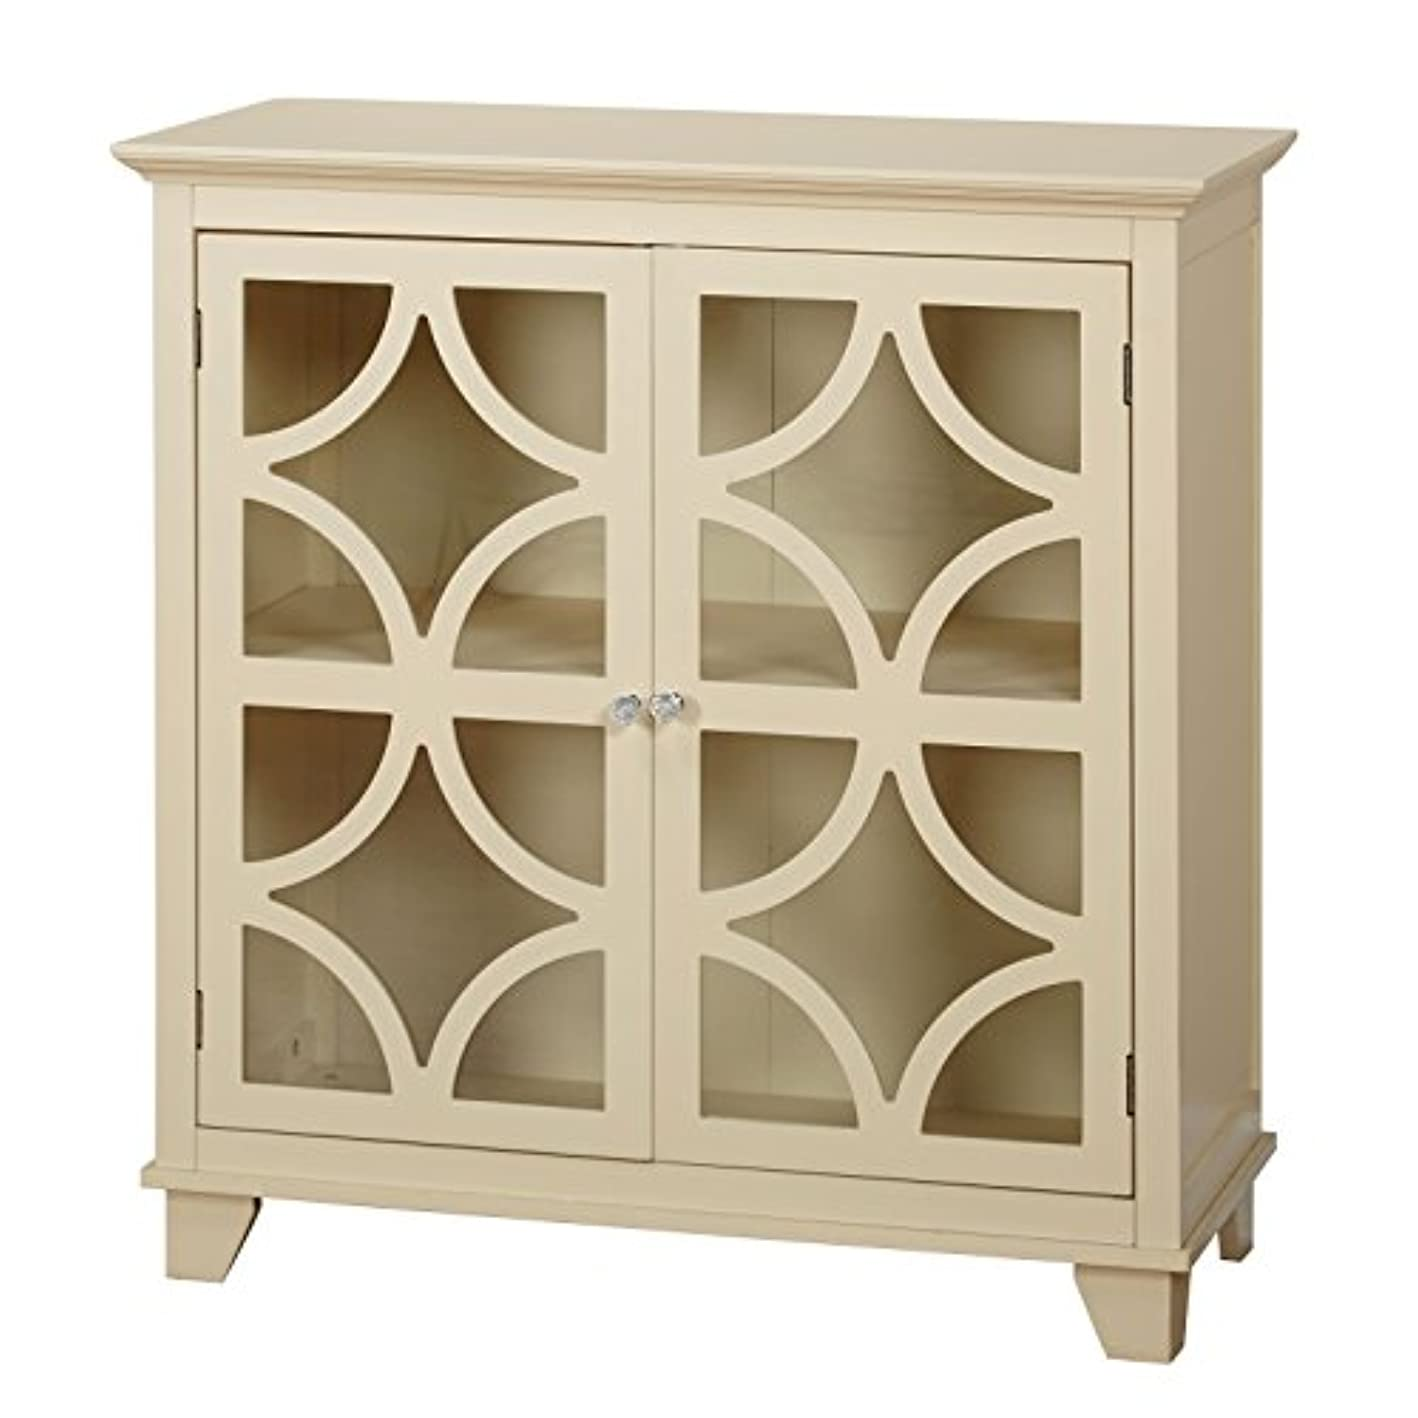 Target Marketing Systems Sydney Accent Storage Cabinet with Trellis Overlay Glass Doors and 2 Shelves, Ivory